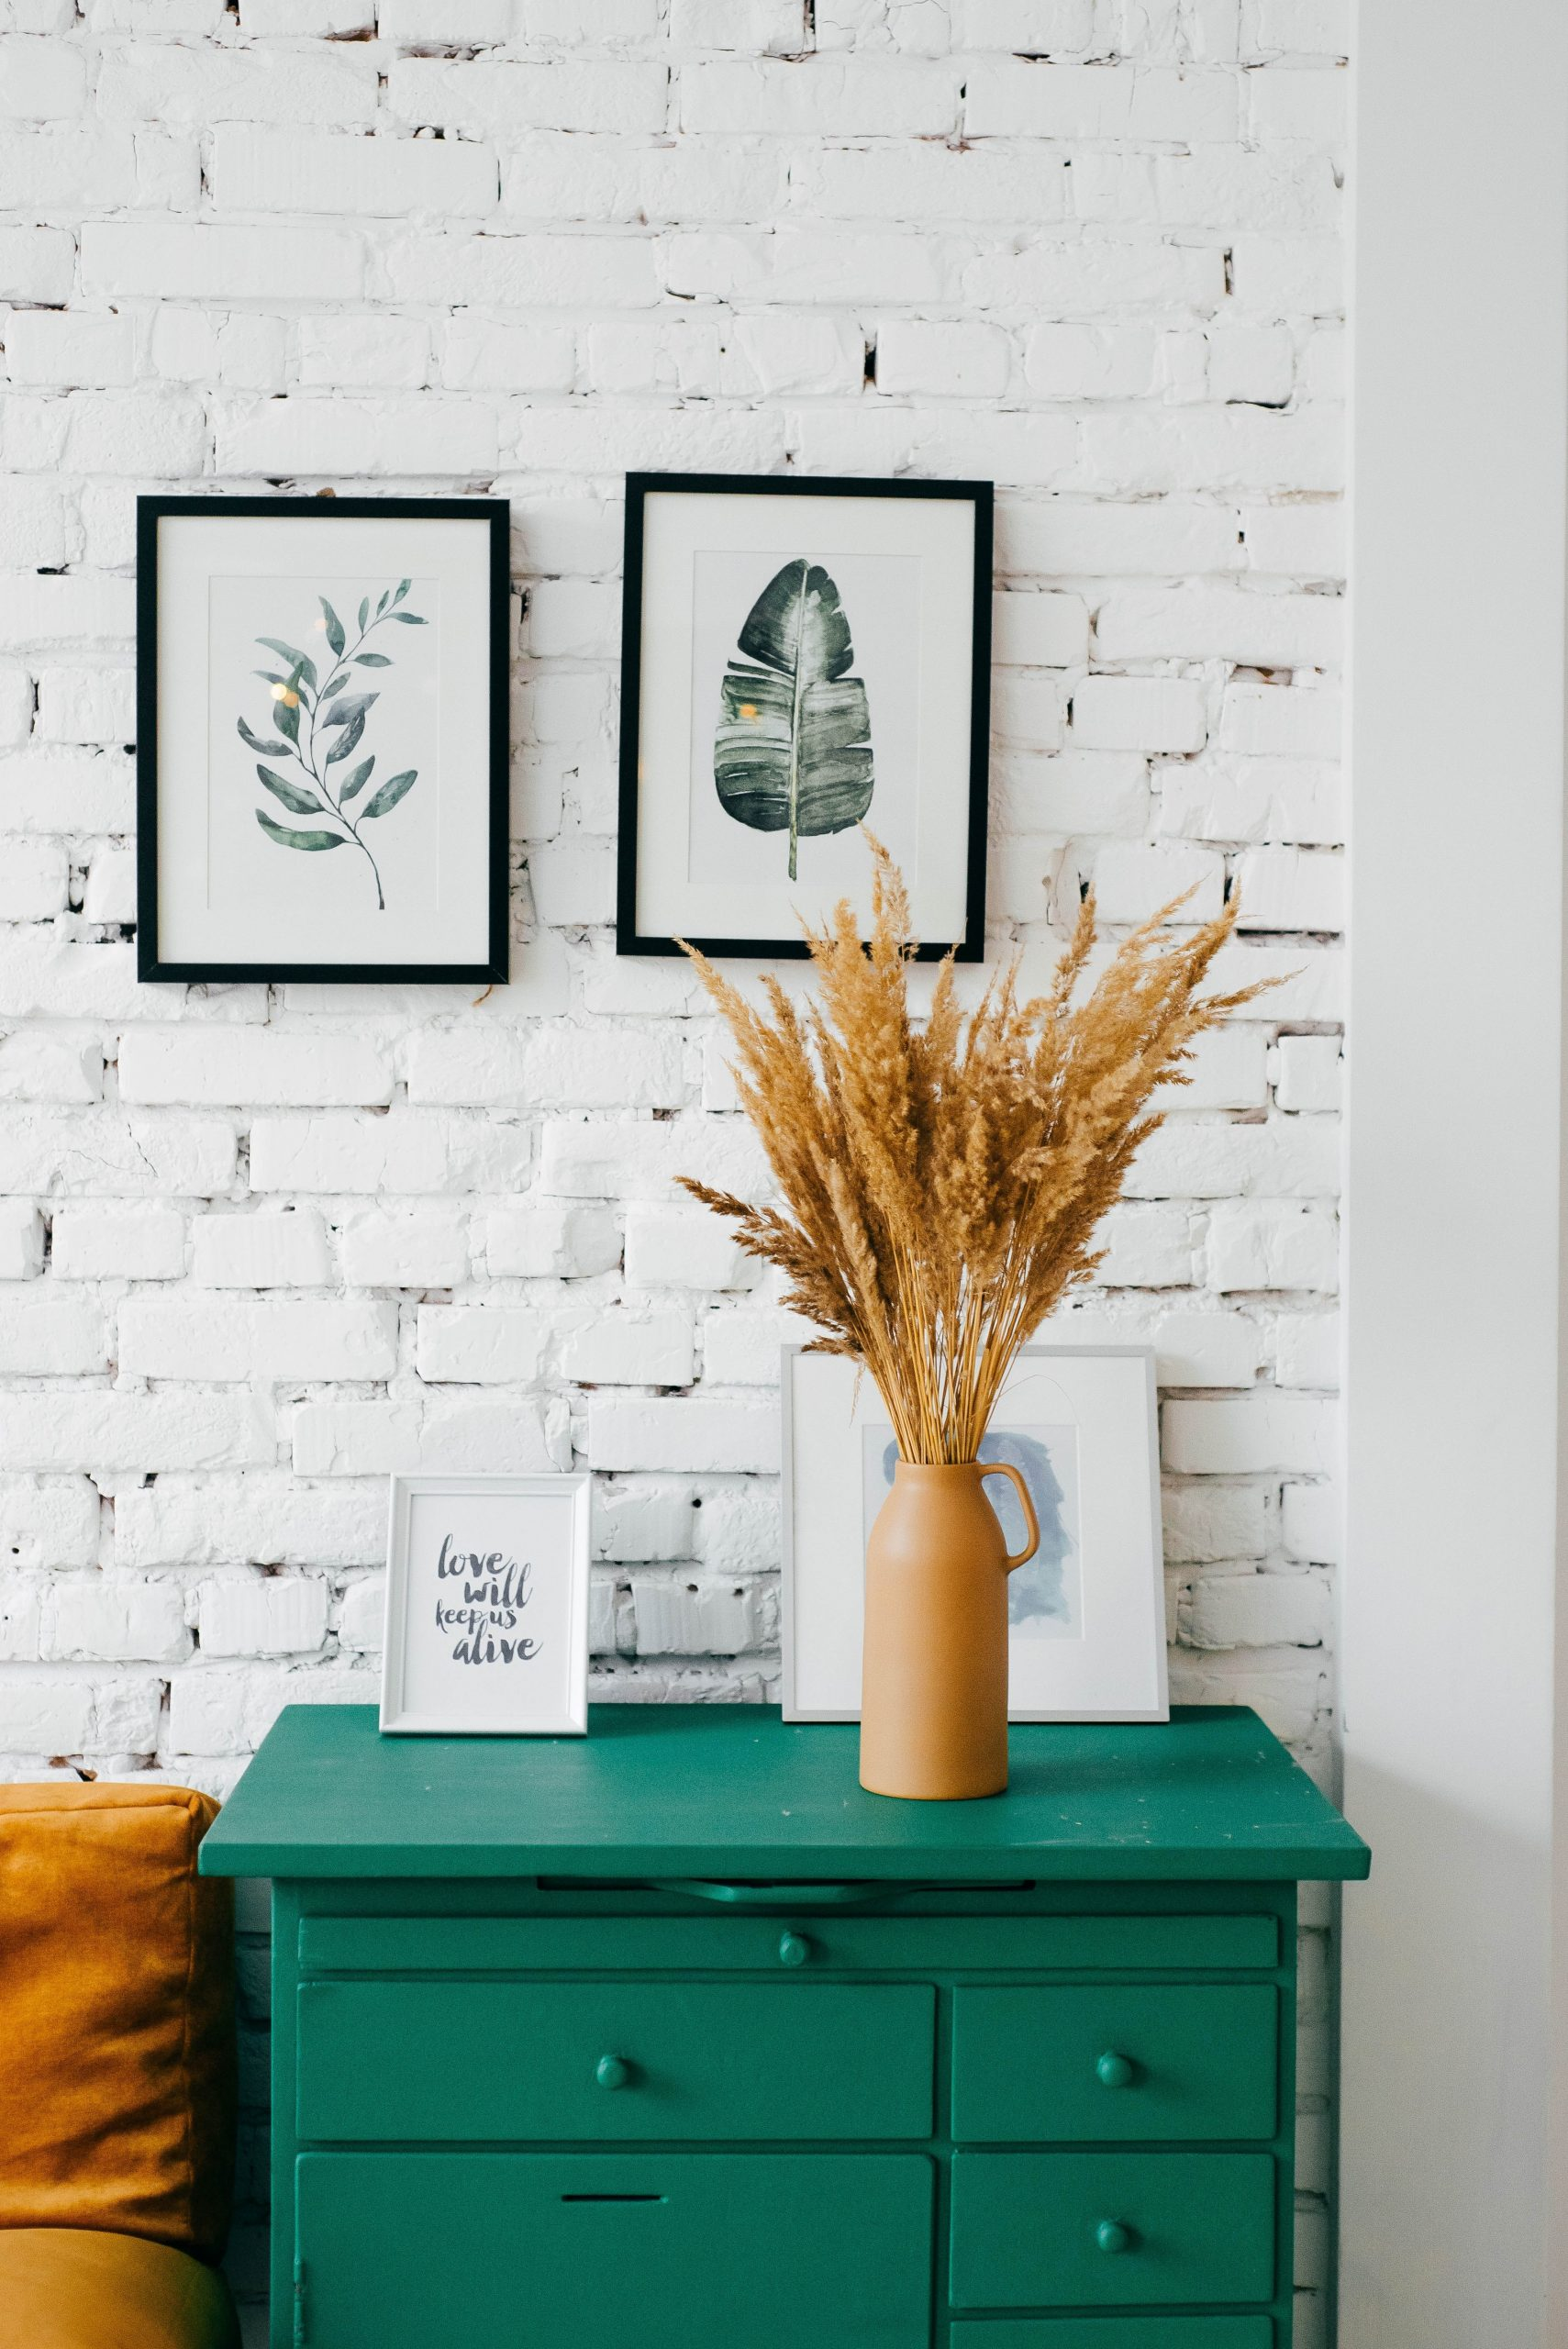 Small spaces can be tricky to decorate, but with some simple additions, you can feel like you have oodles of space!